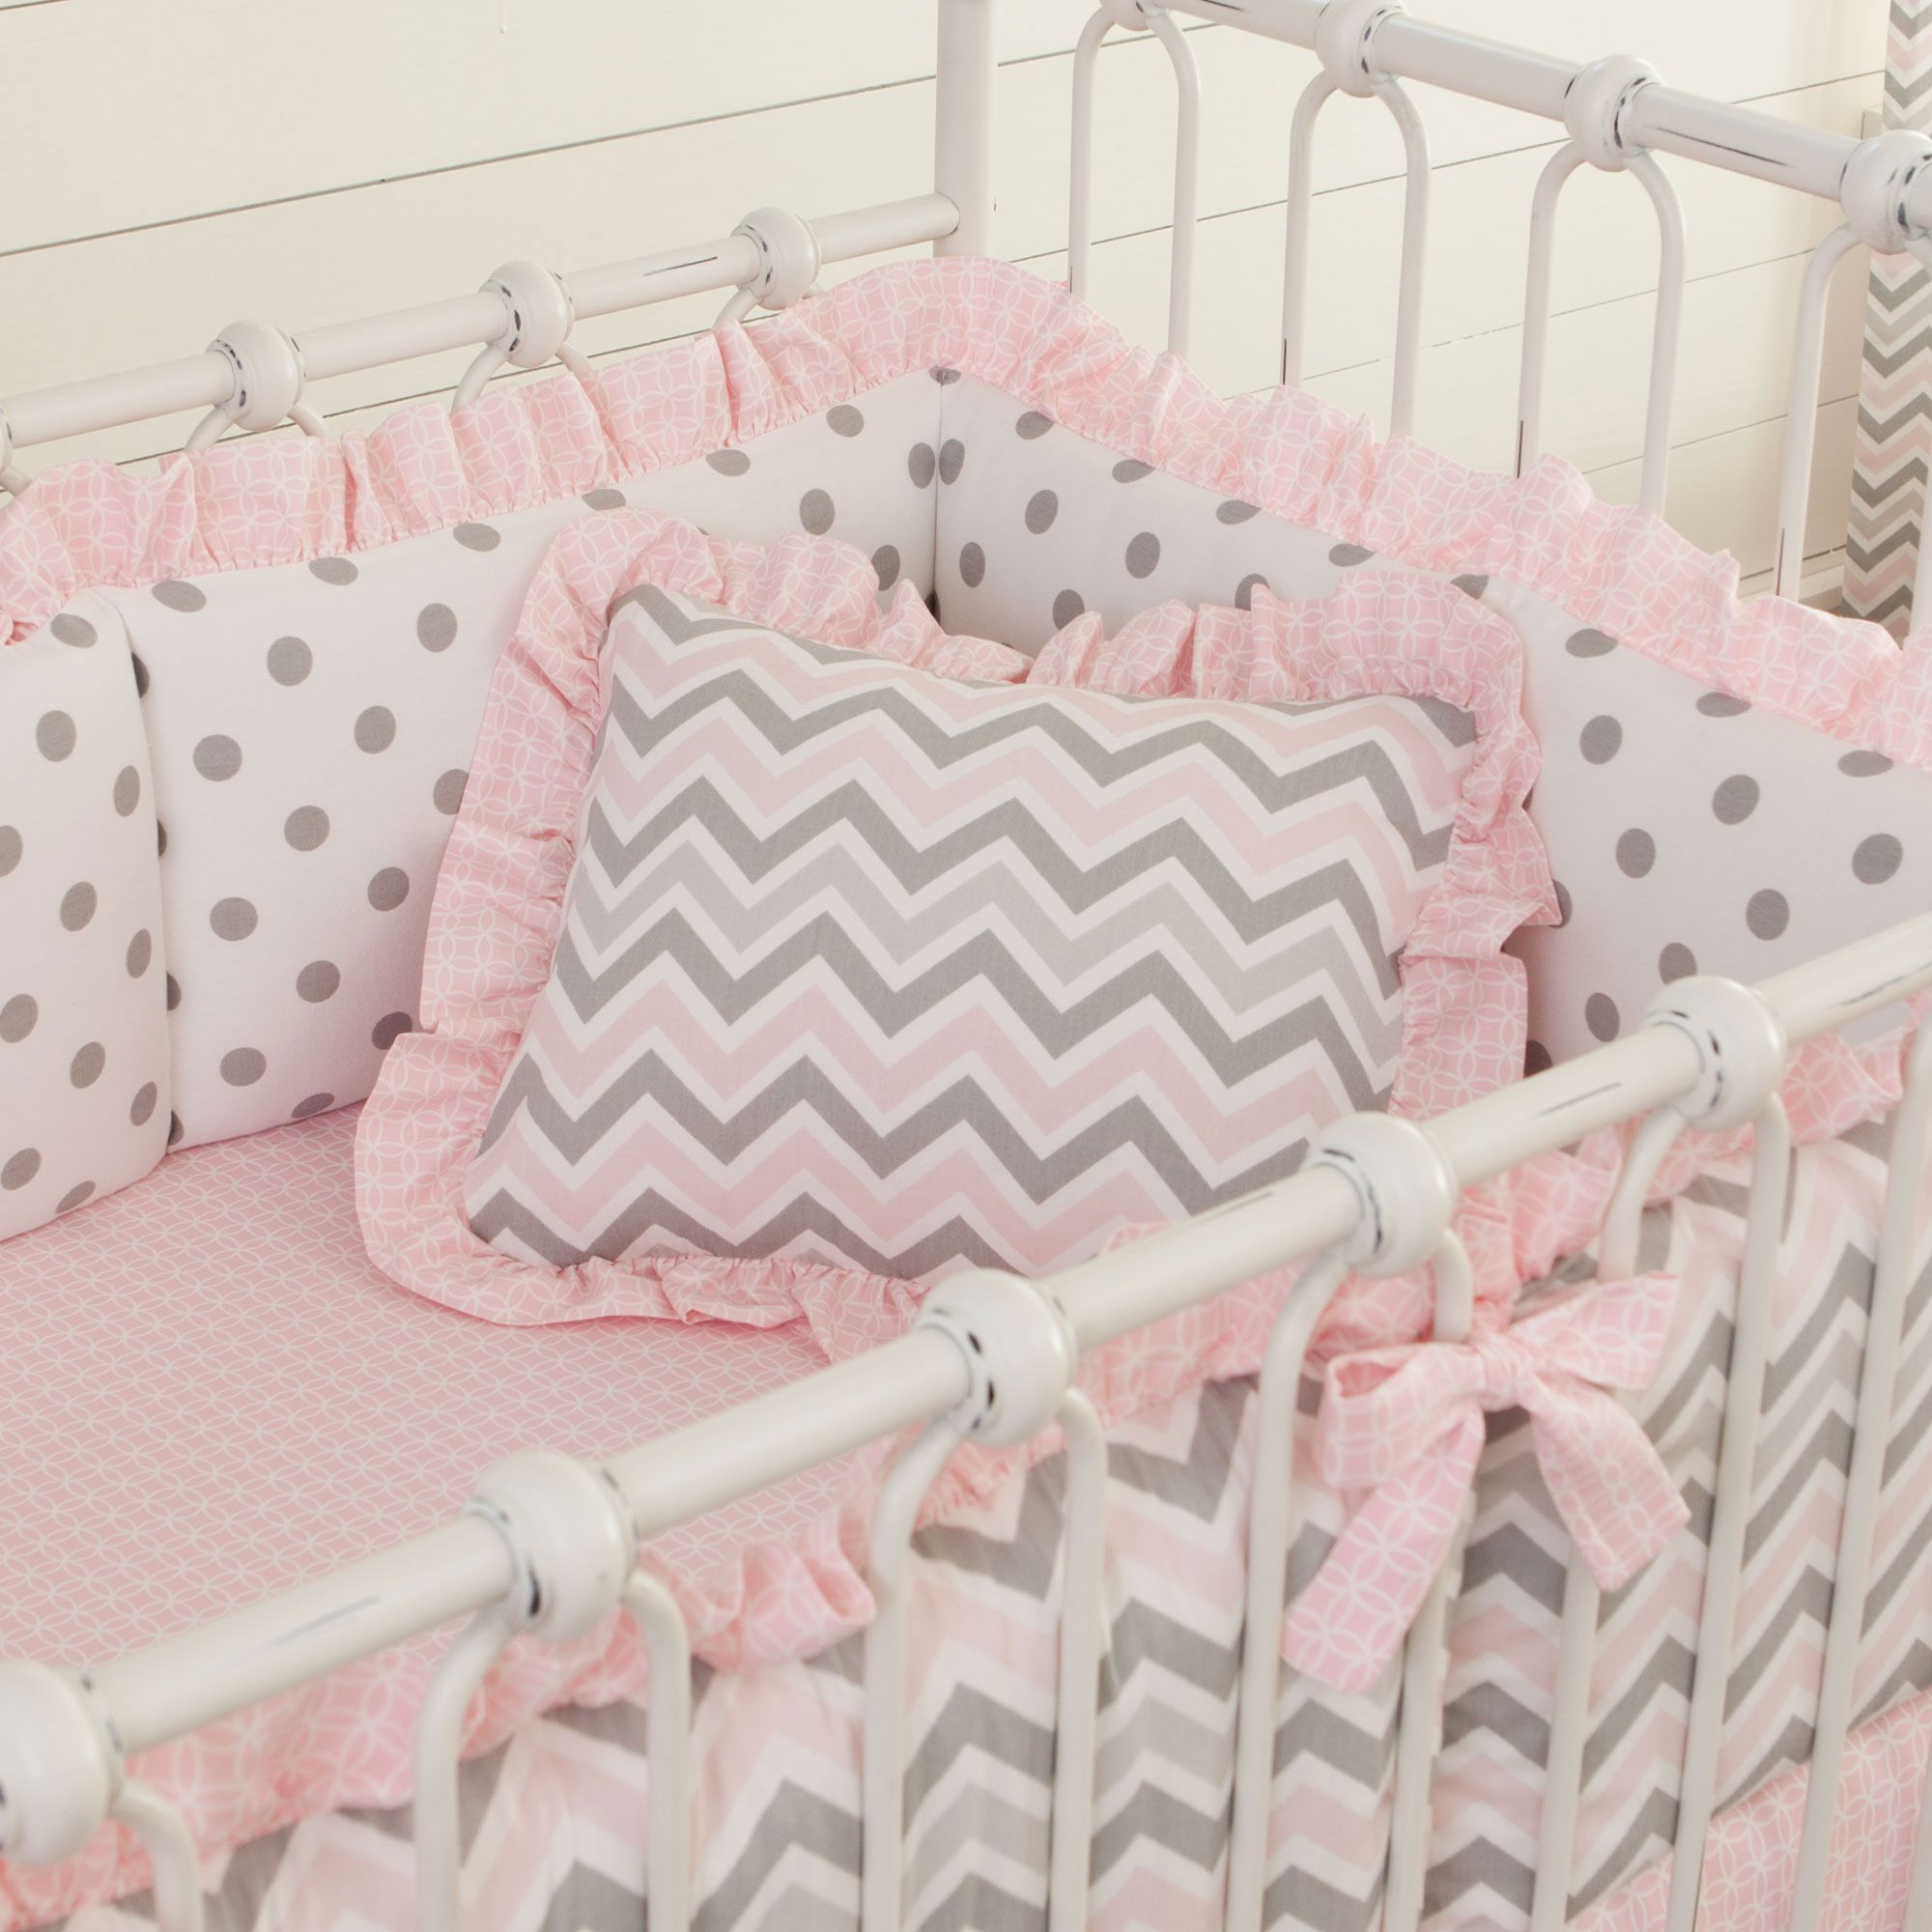 Pillows For Babies In The Crib -